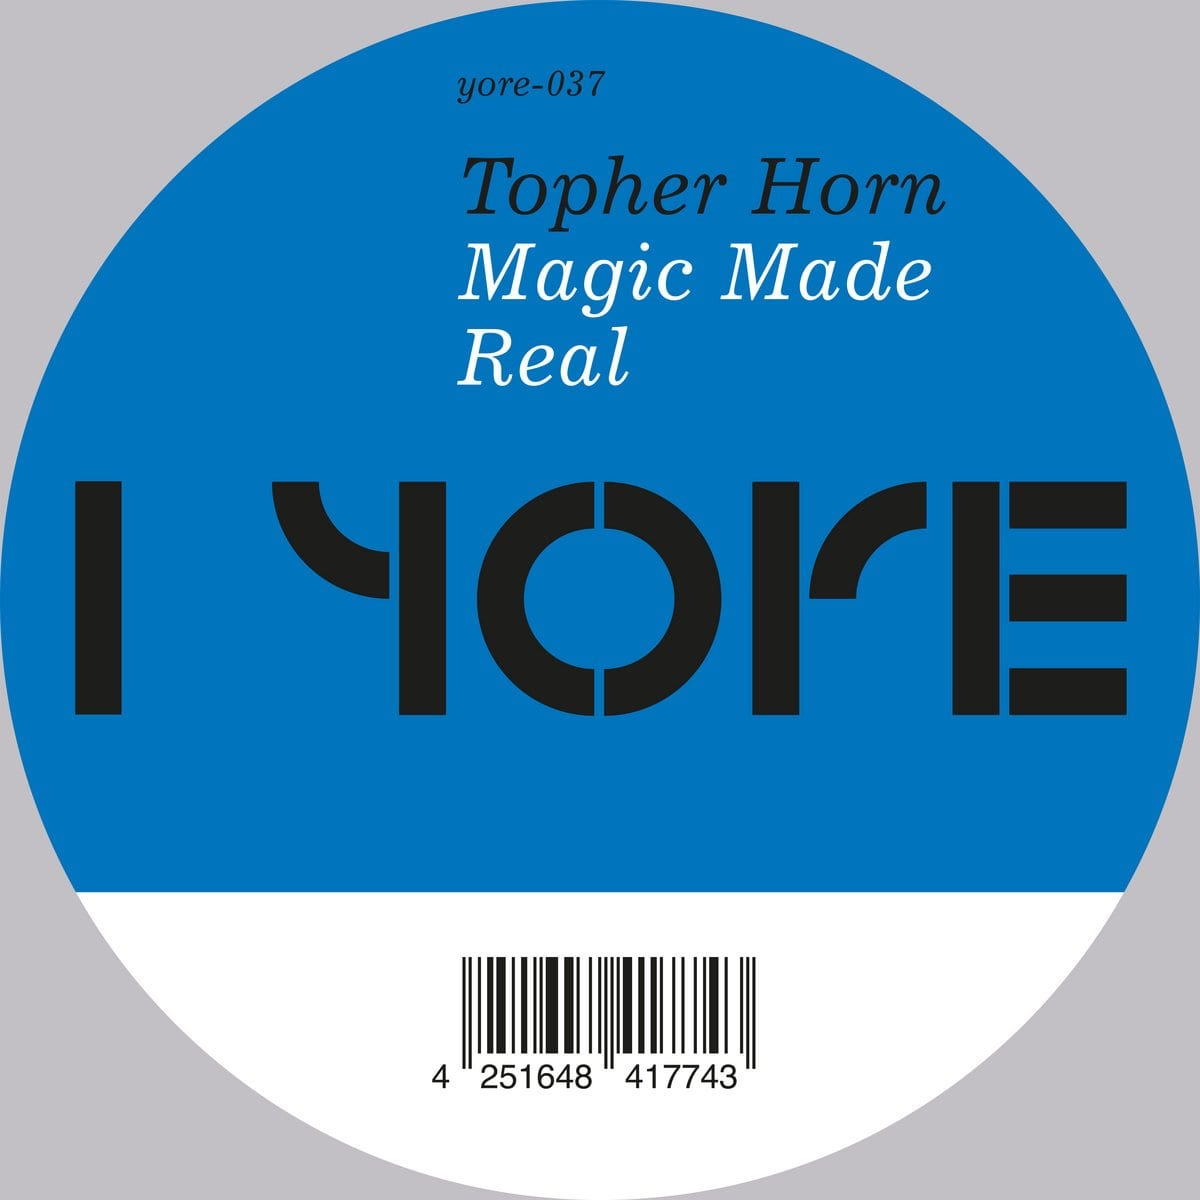 Topher Horn - Magic Made Real [12''] (import) - Urban Vinyl | Records, Headphones, and more.